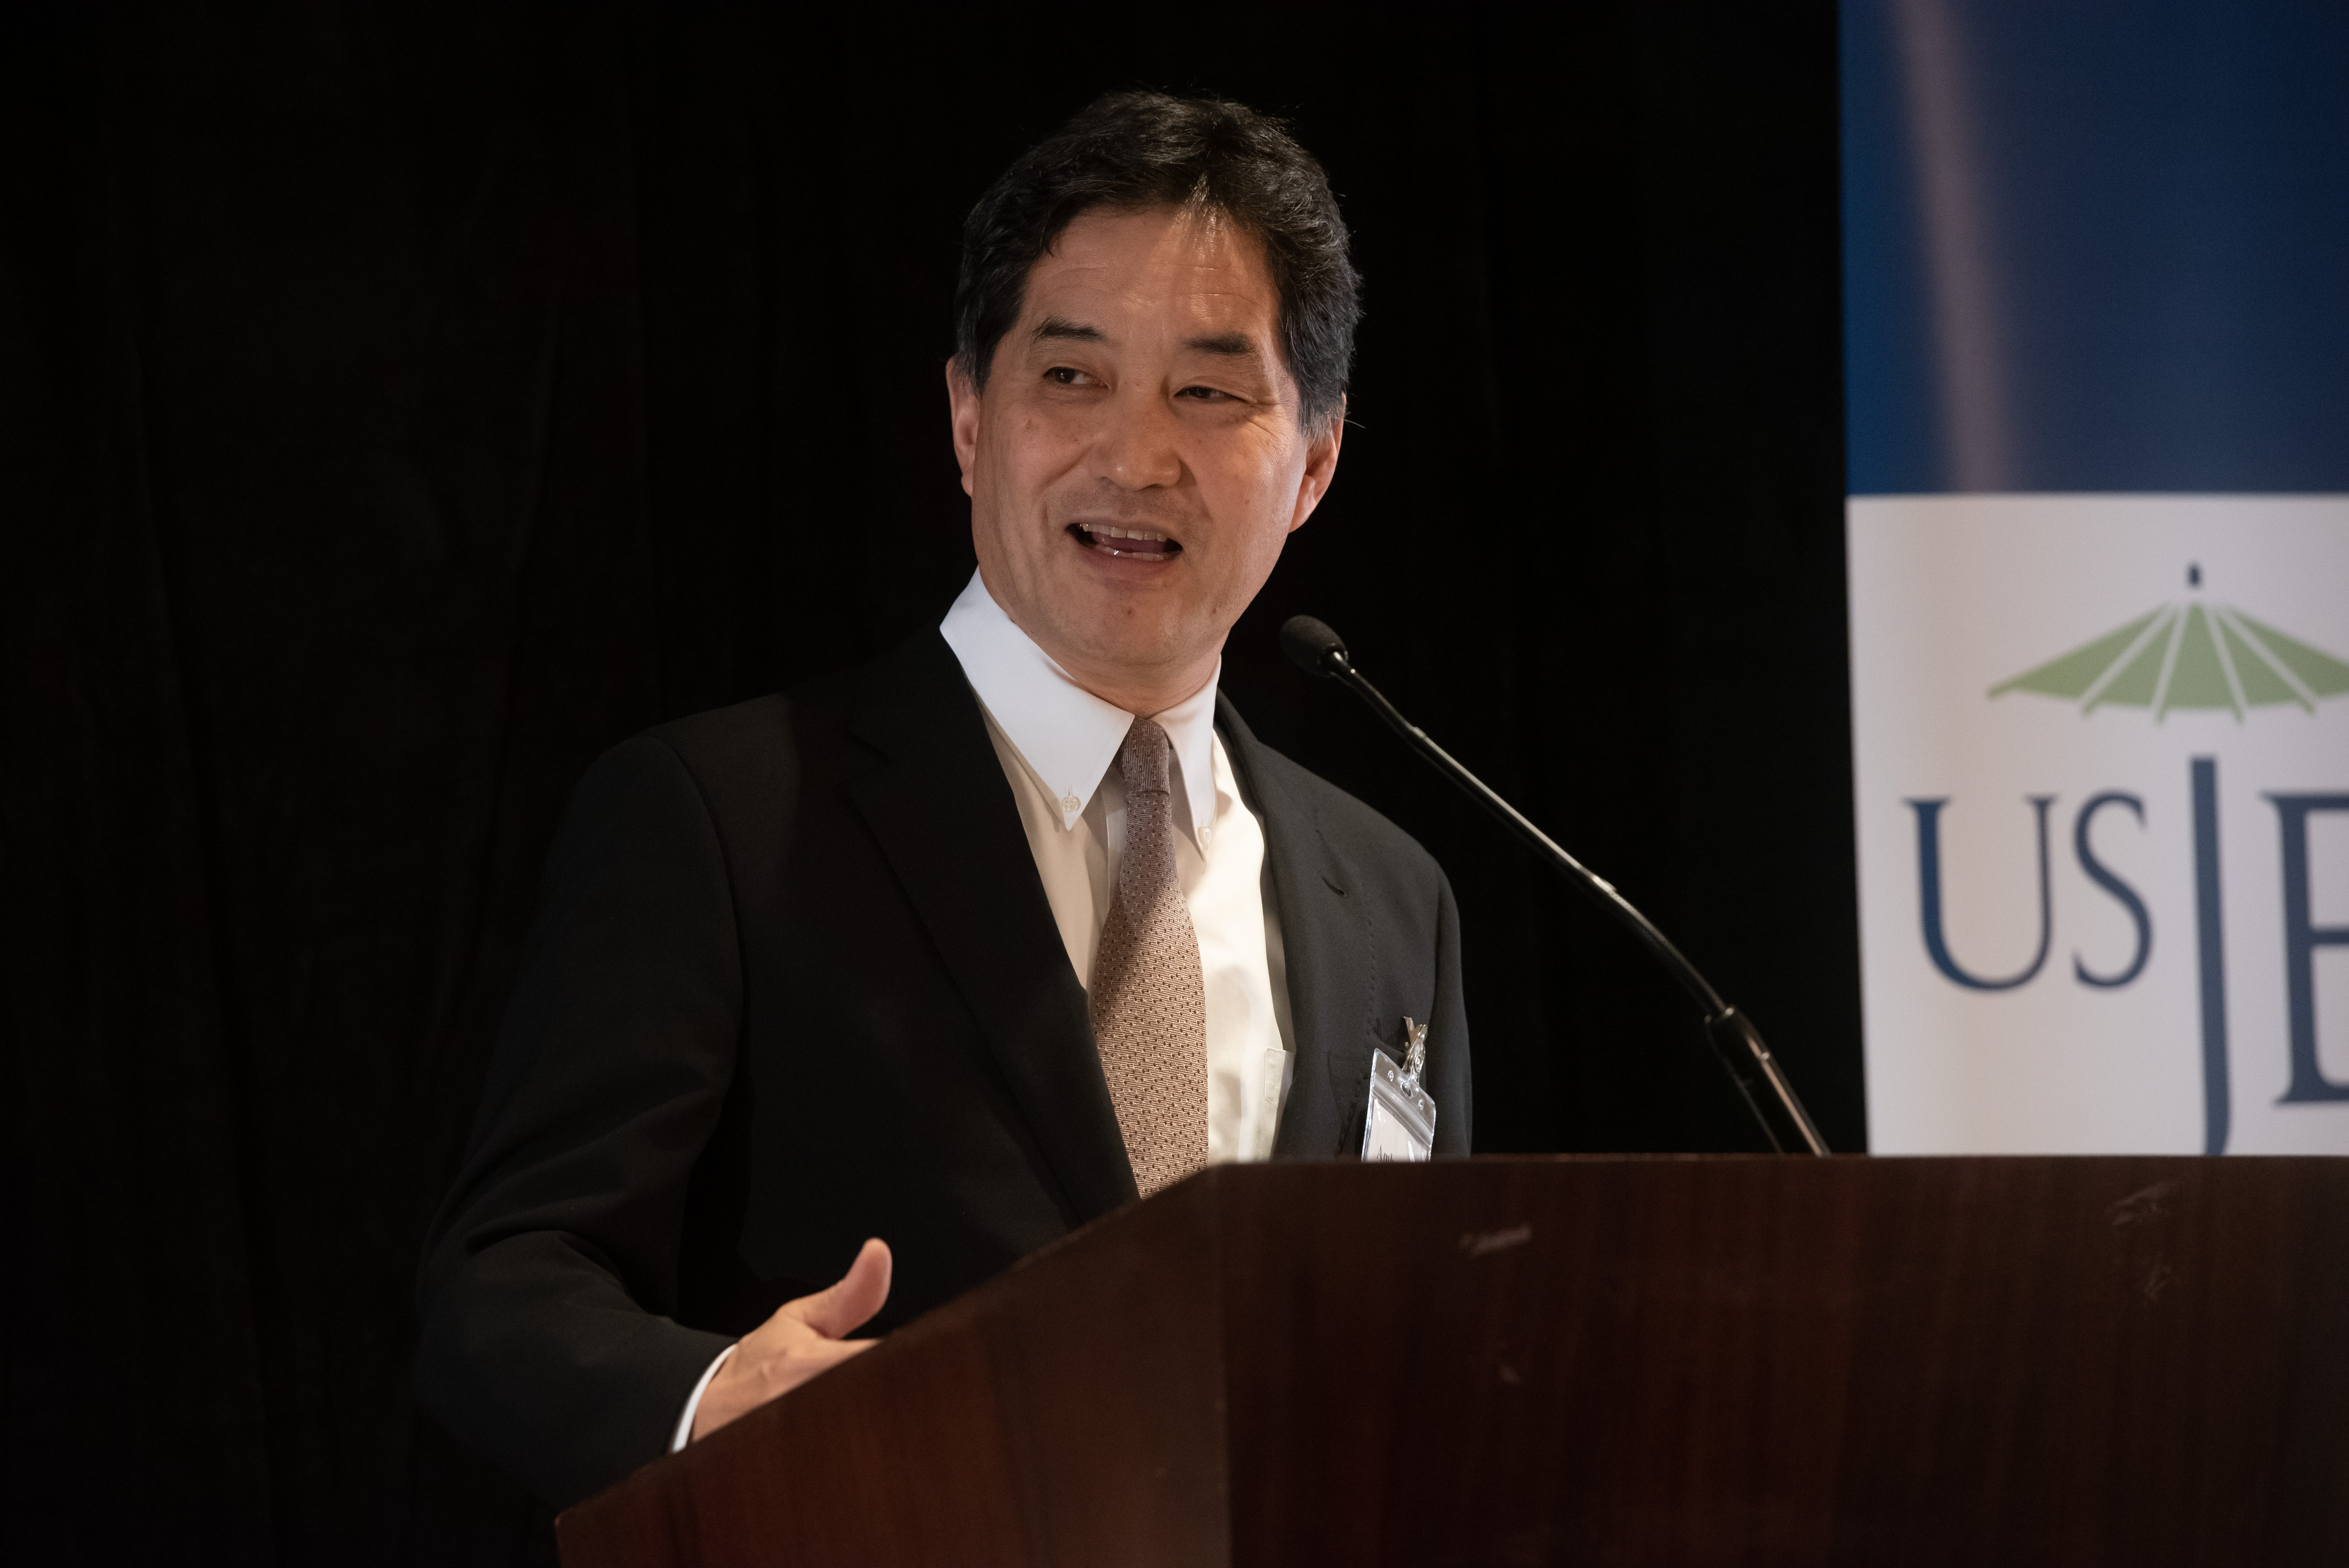 Ambassador Kazutoshi Aikawa, Deputy Chief of Mission of the Embassy of Japan